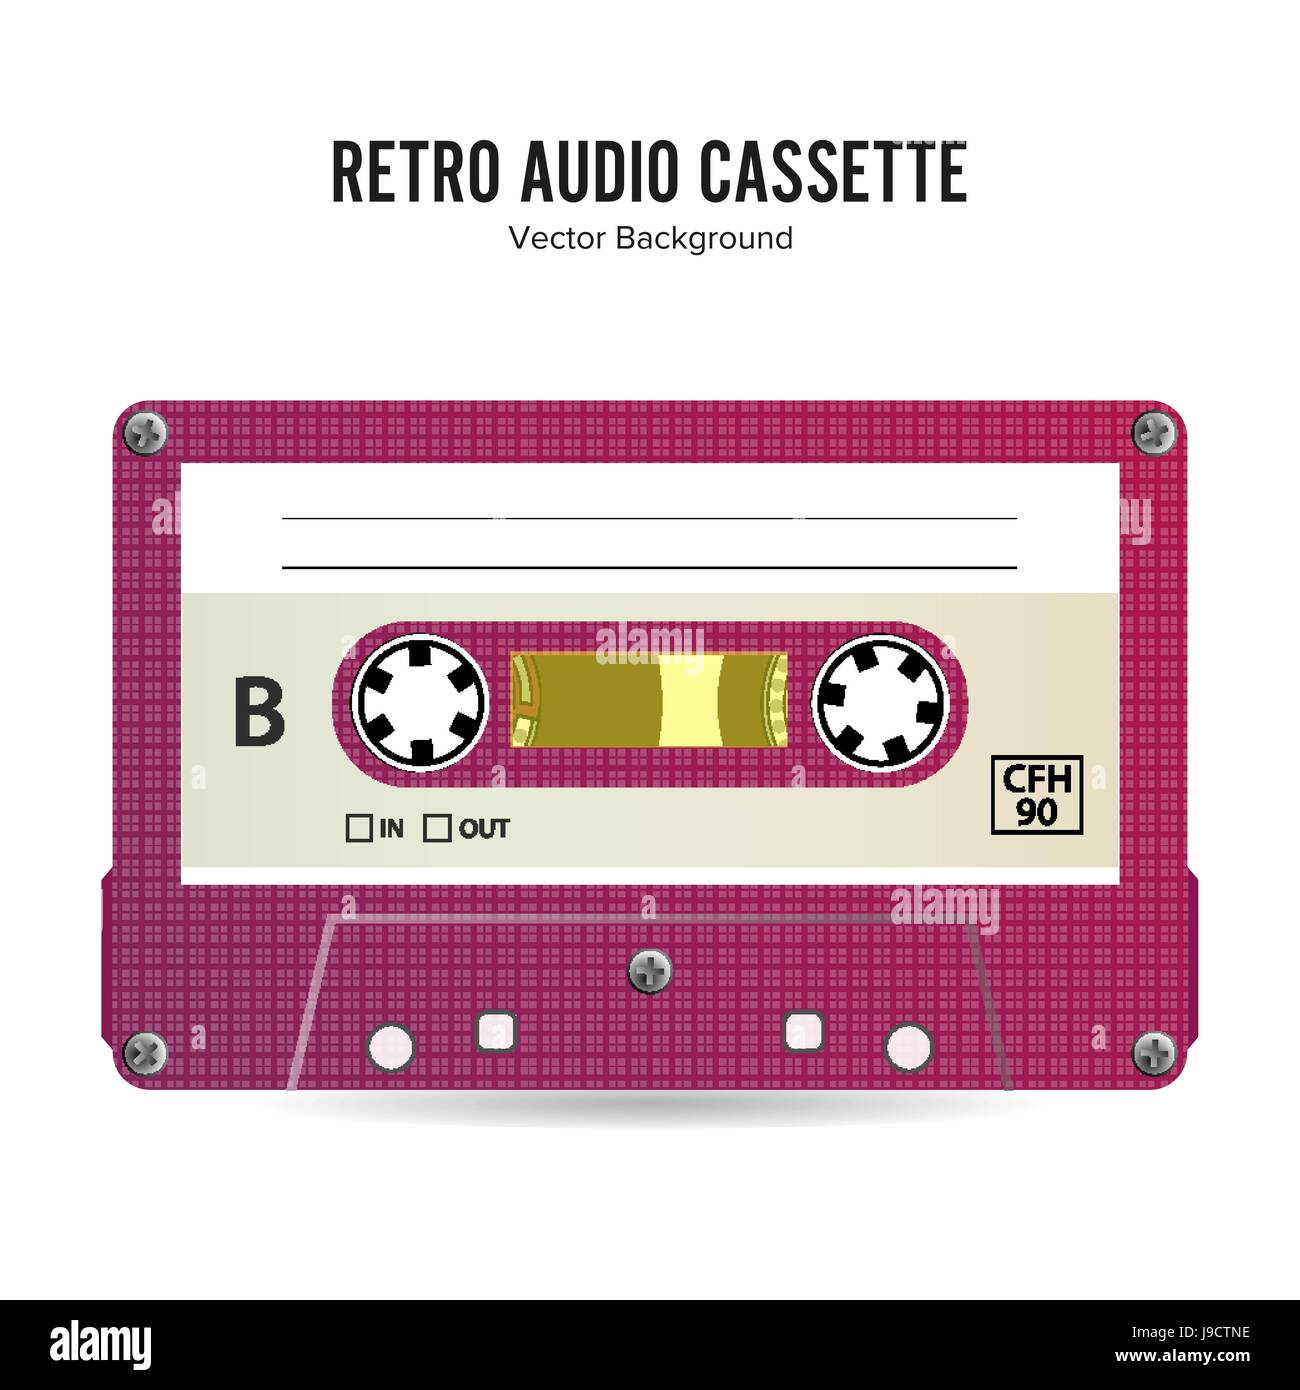 Retro Audio Cassette Vector. Detailed Retro C90 Audio Cassette With Place For Title - Stock Vector